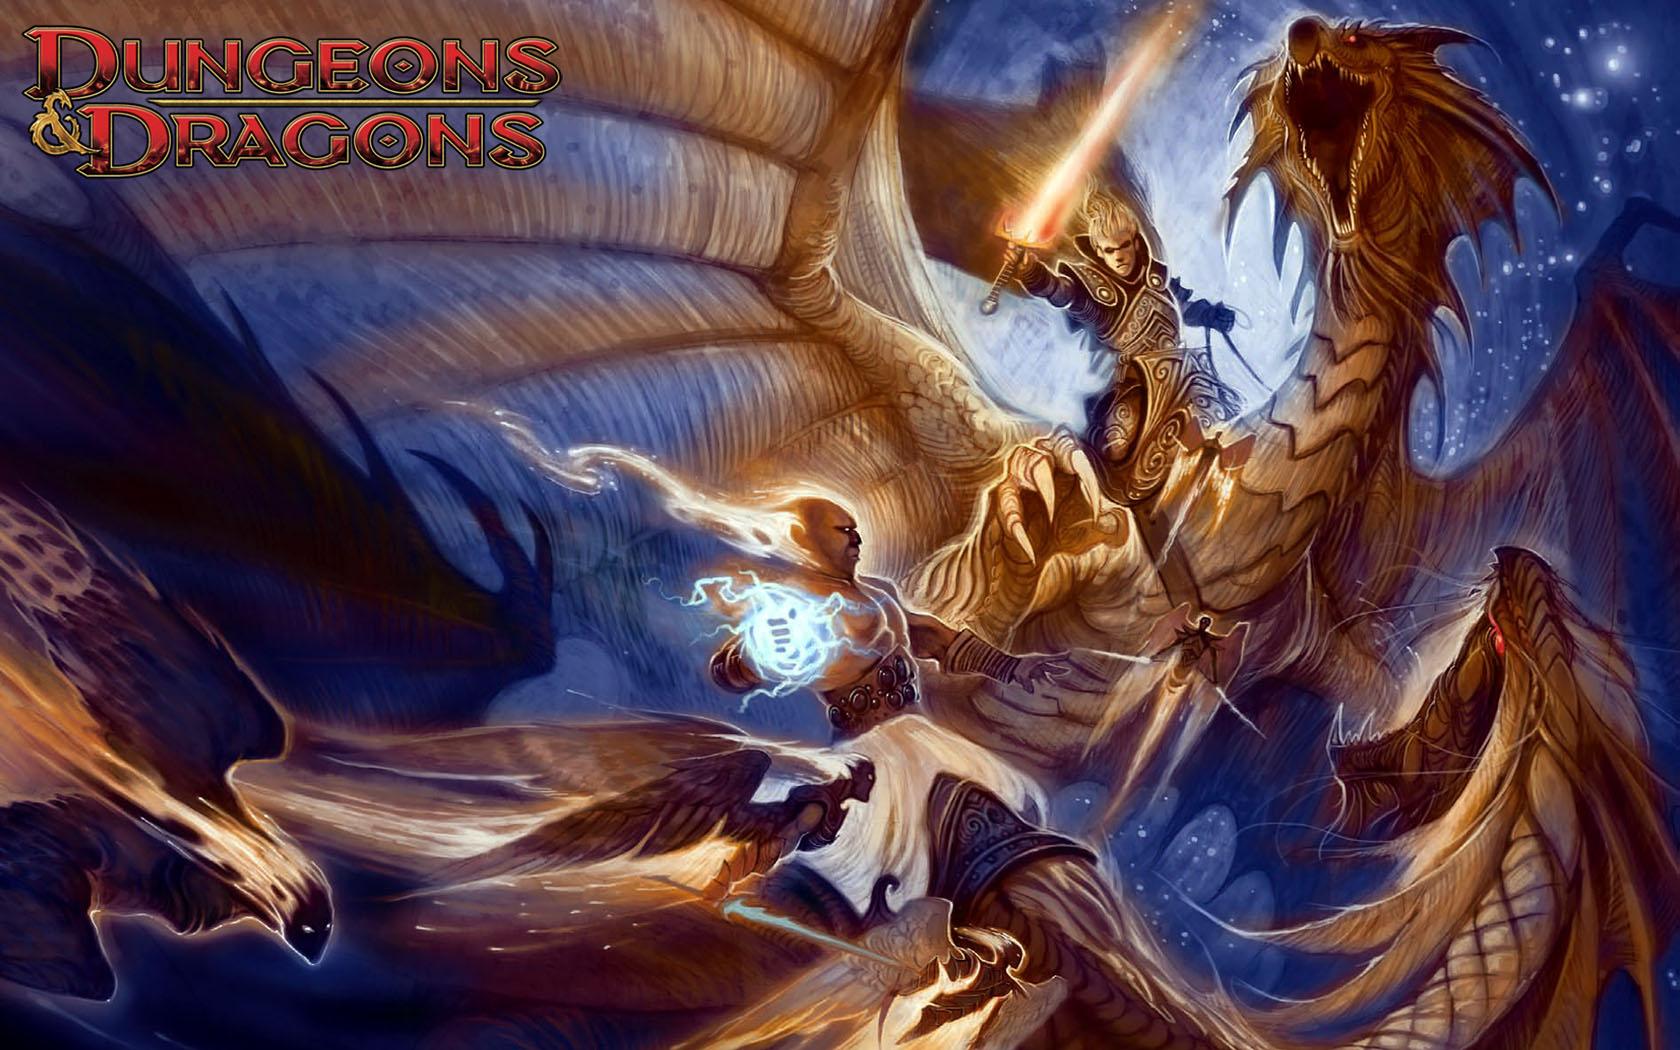 Dungeons and Dragons Wallpaper 1